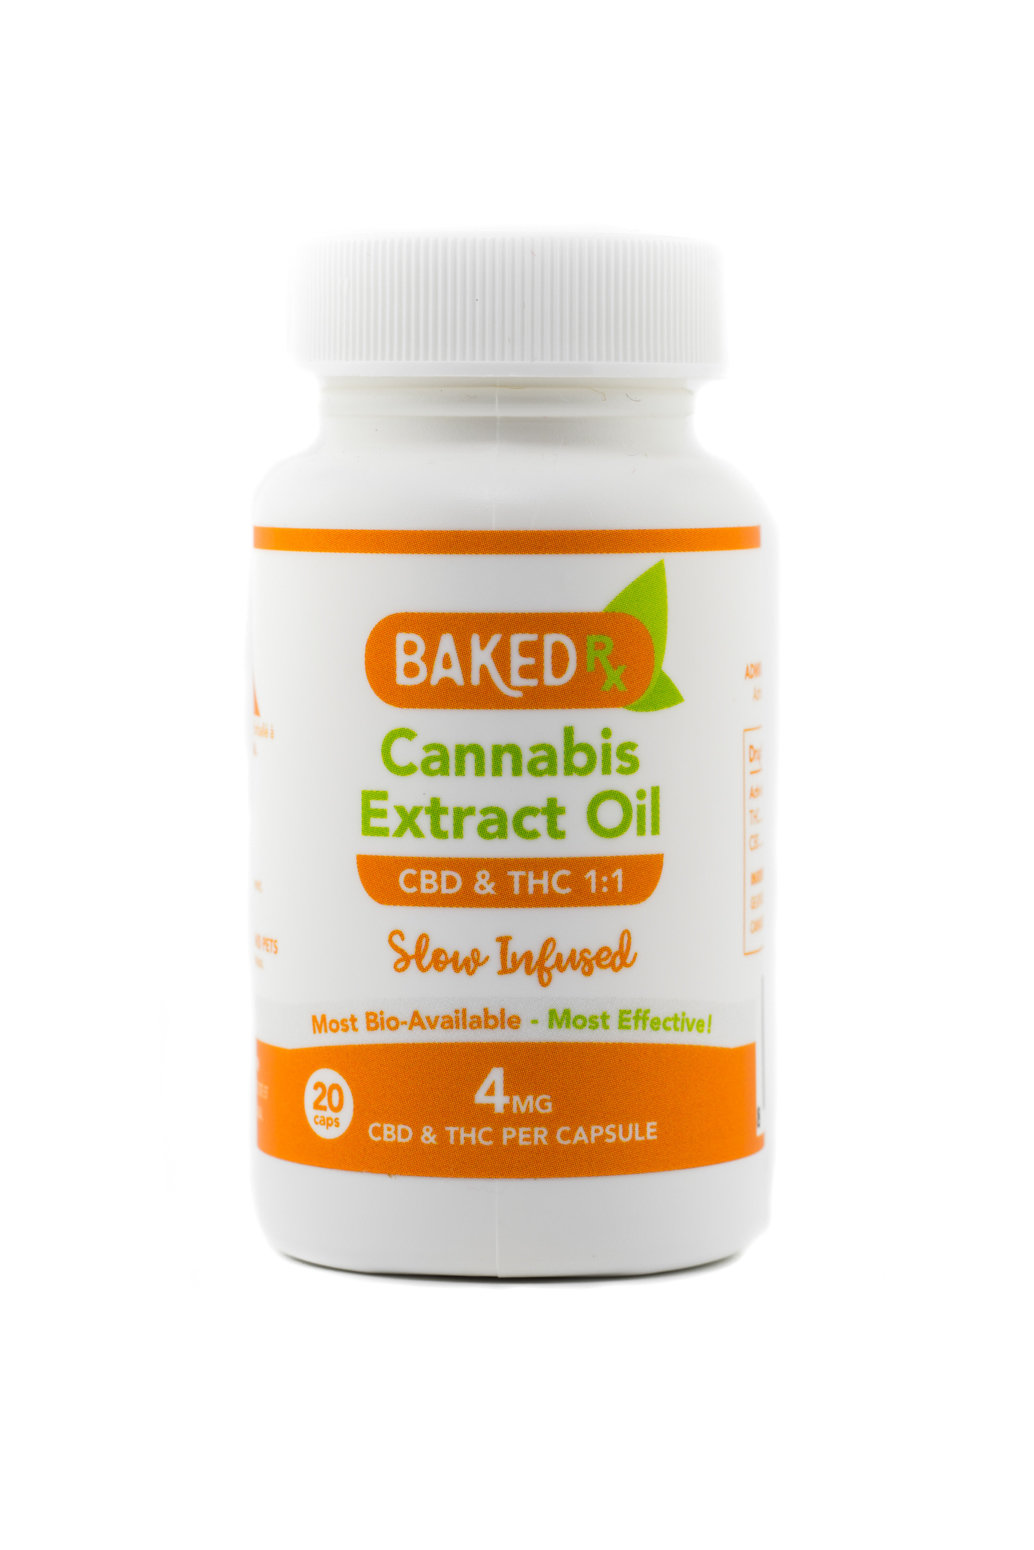 4mg 1:1 THC/CBD Cannoil (20 pack) by Baked Edibles 00046